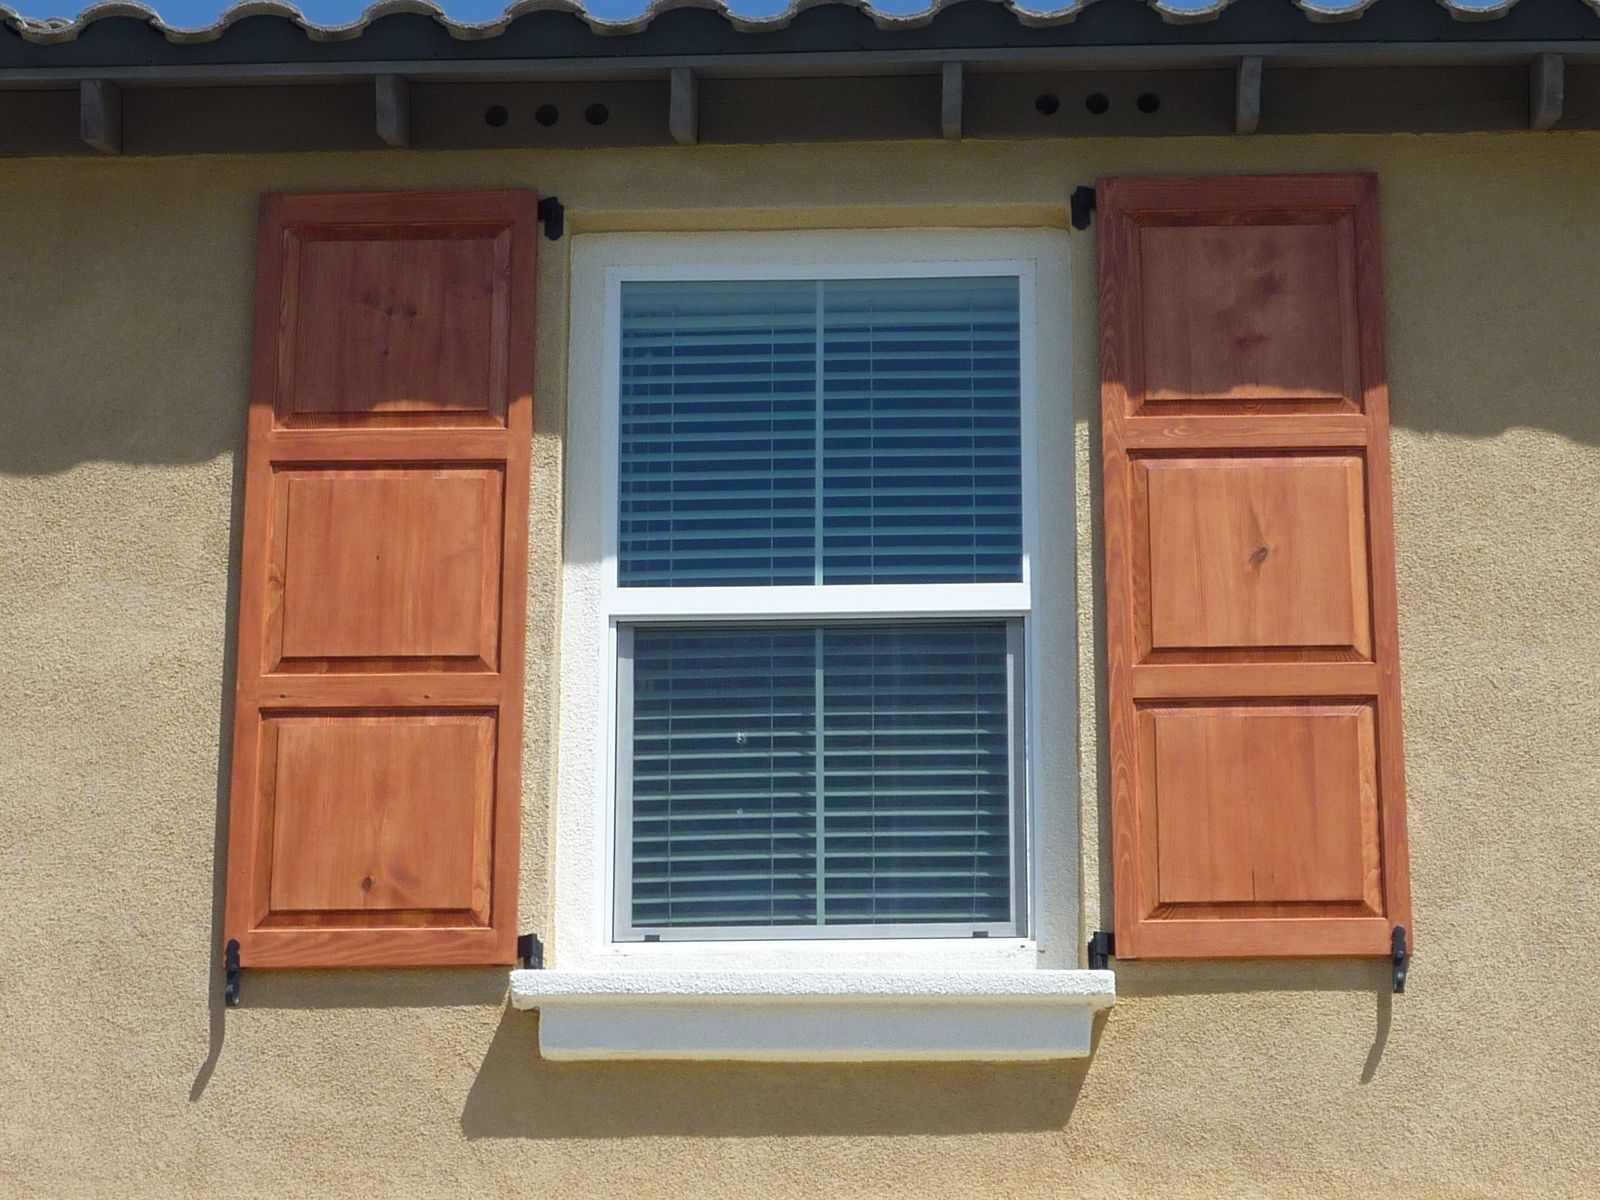 Exterior house windows design - Exterior Shutters New Exterior Window Shutters Decorating Design Home Design Gallery